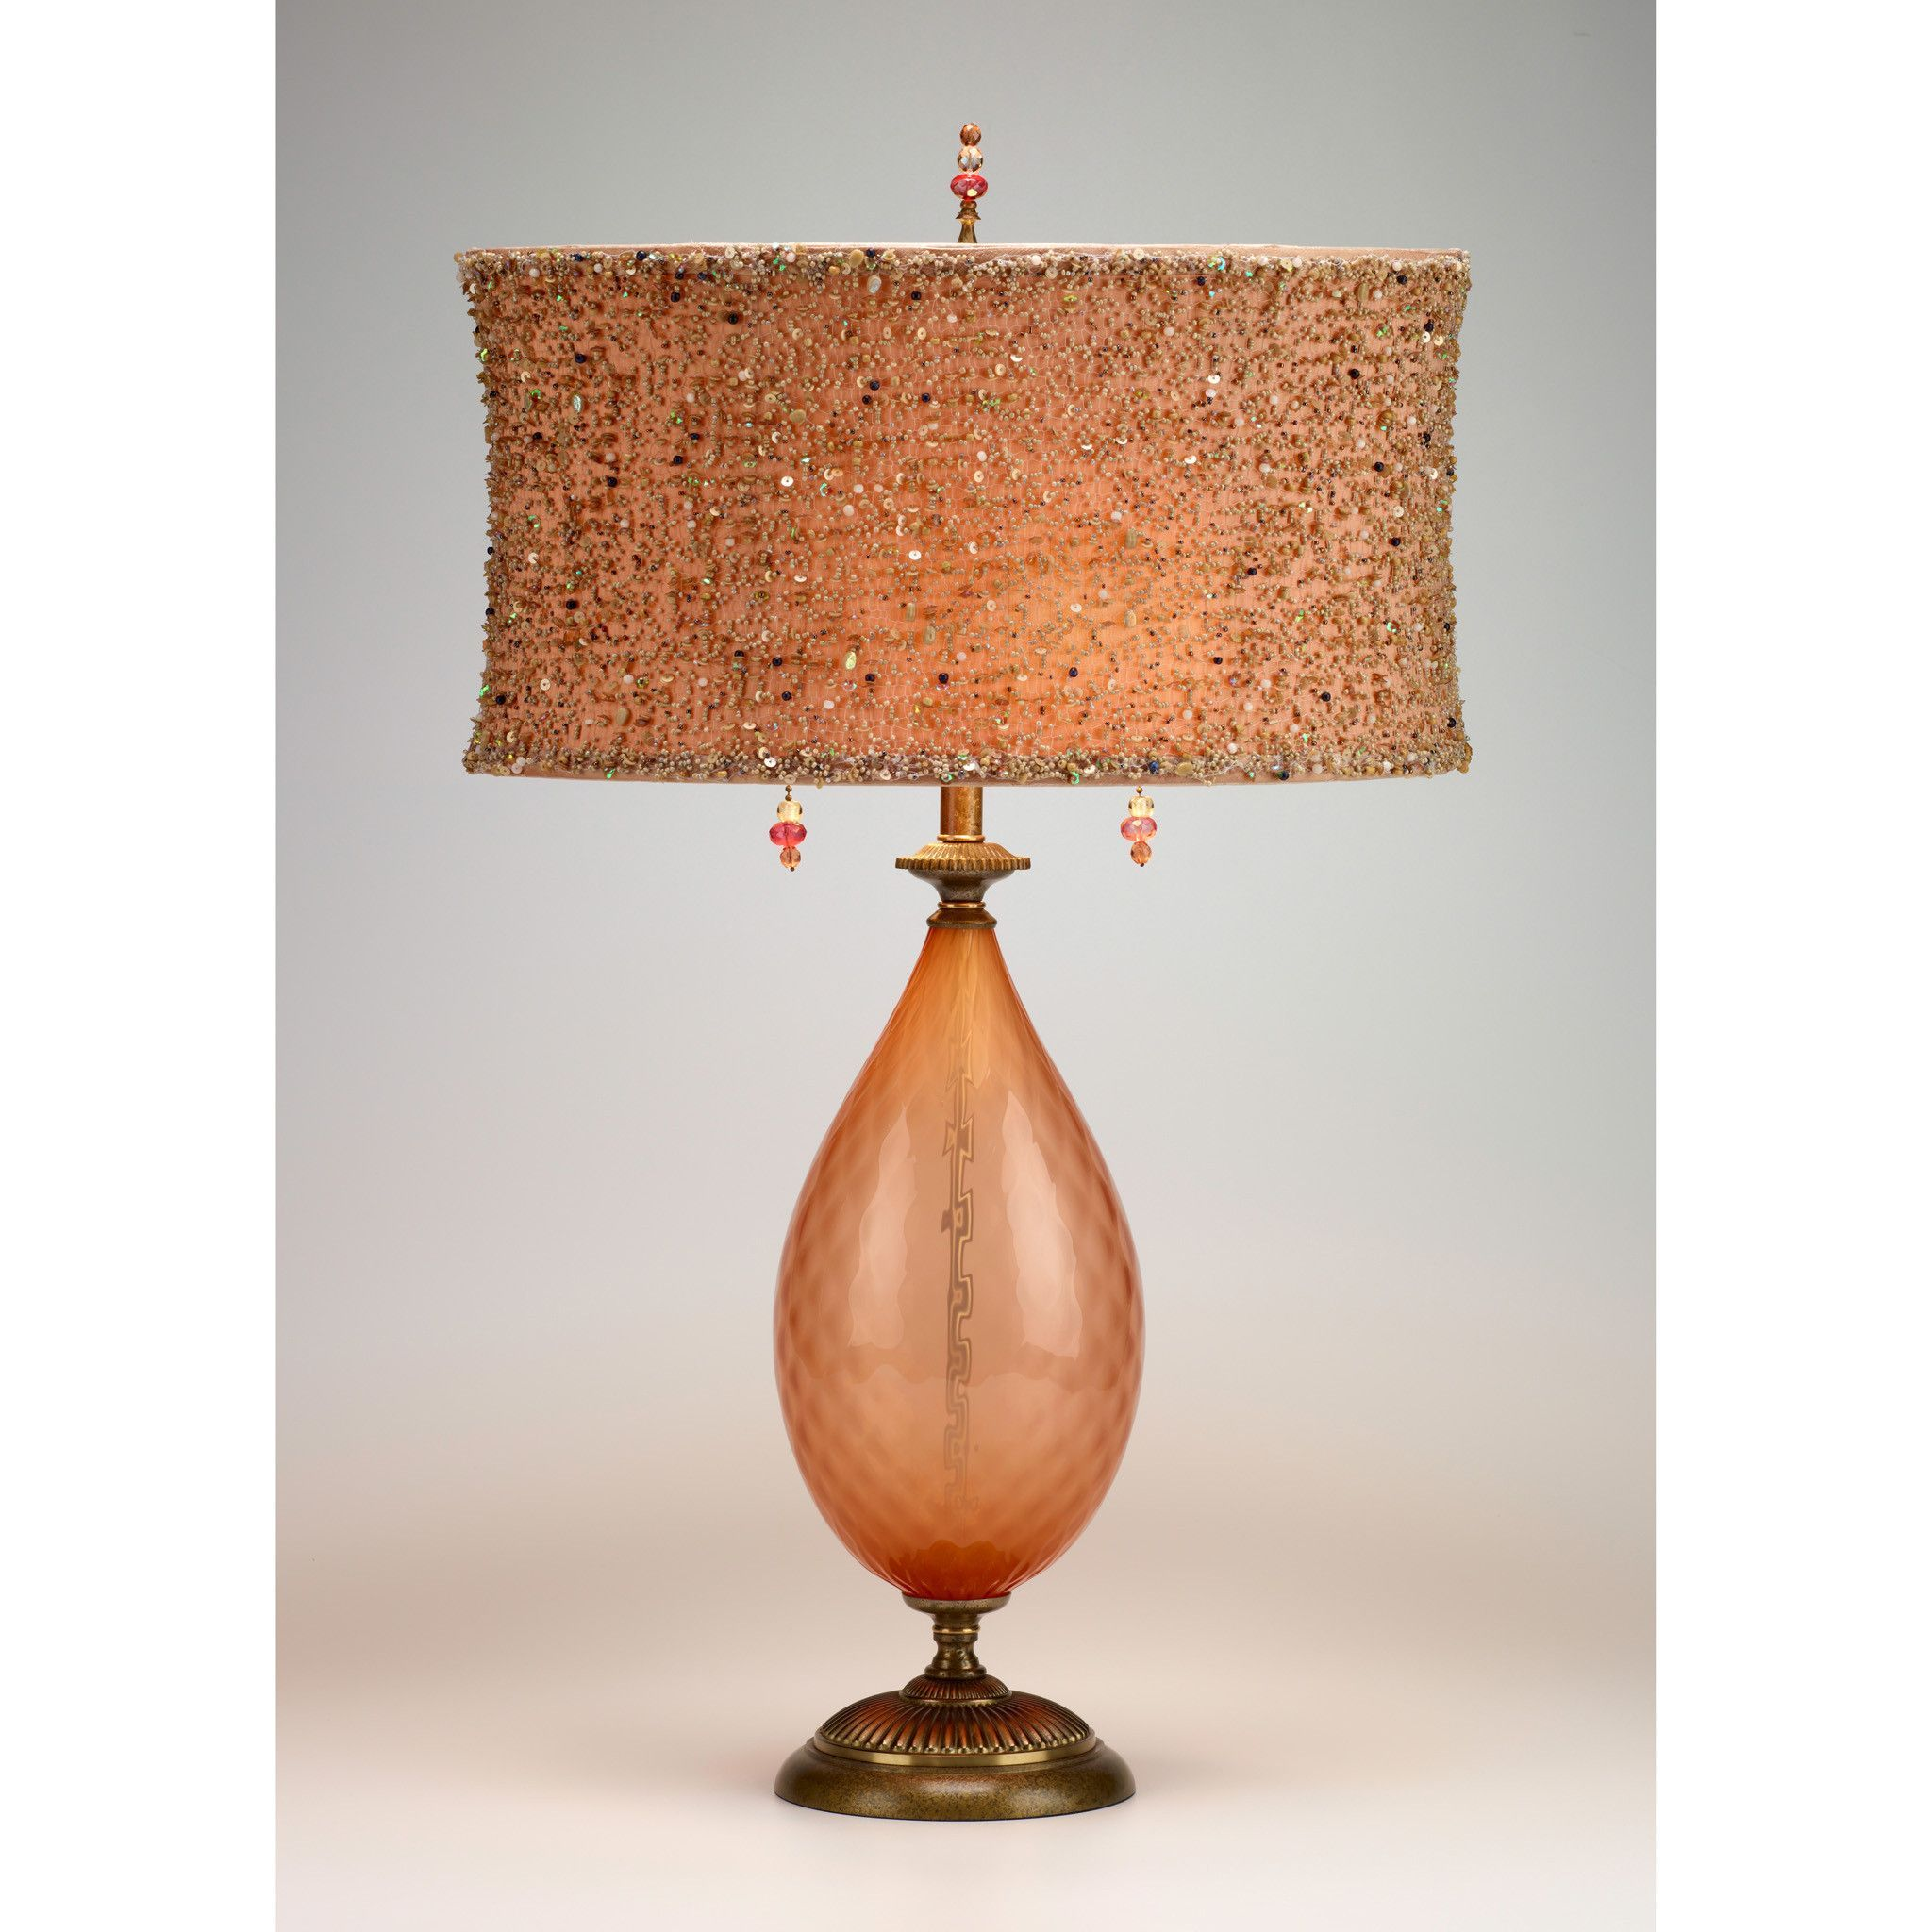 Kinzig Margie Table Lamp 83af86 Has A Soft Peach Colored, Hand Blown Glass  Base,